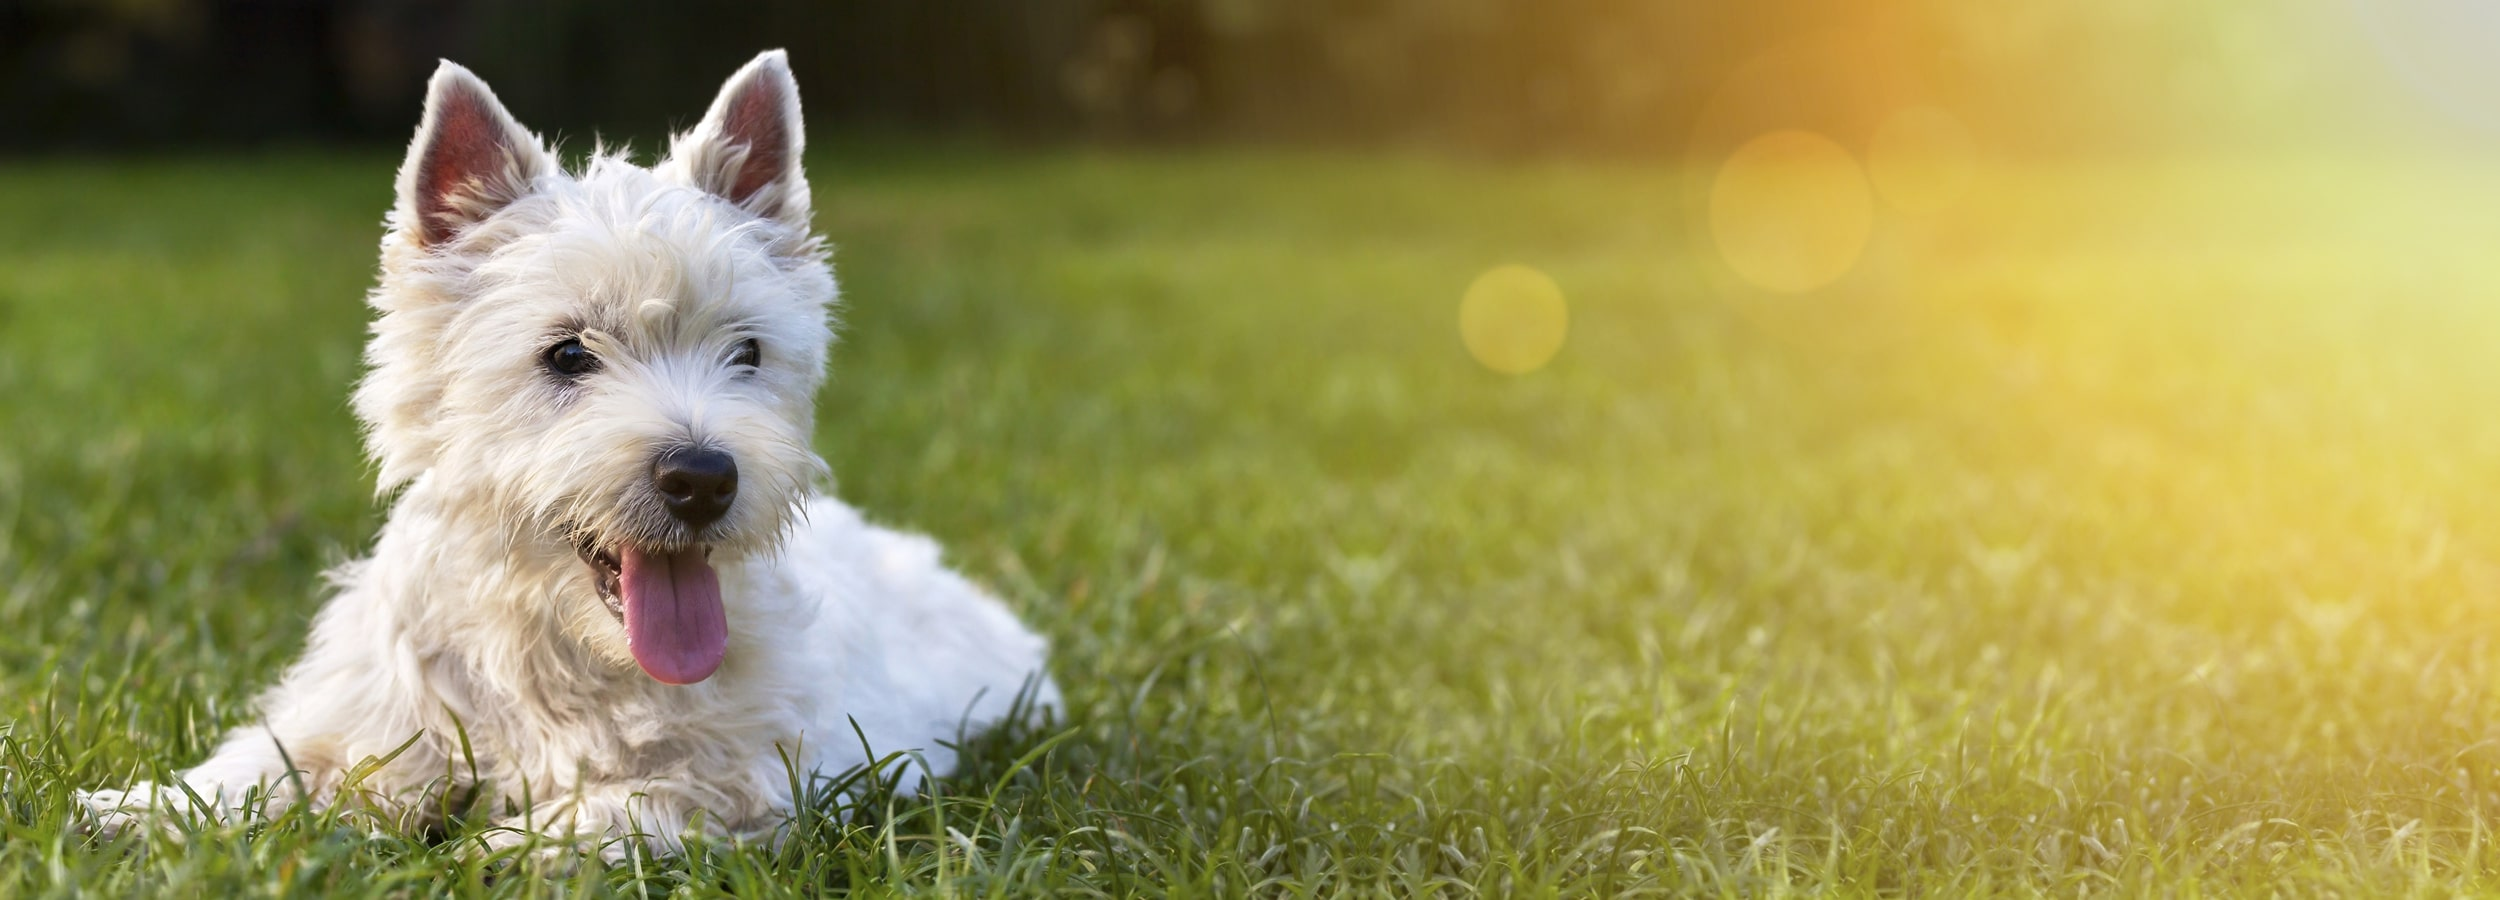 A dog resting on the grass